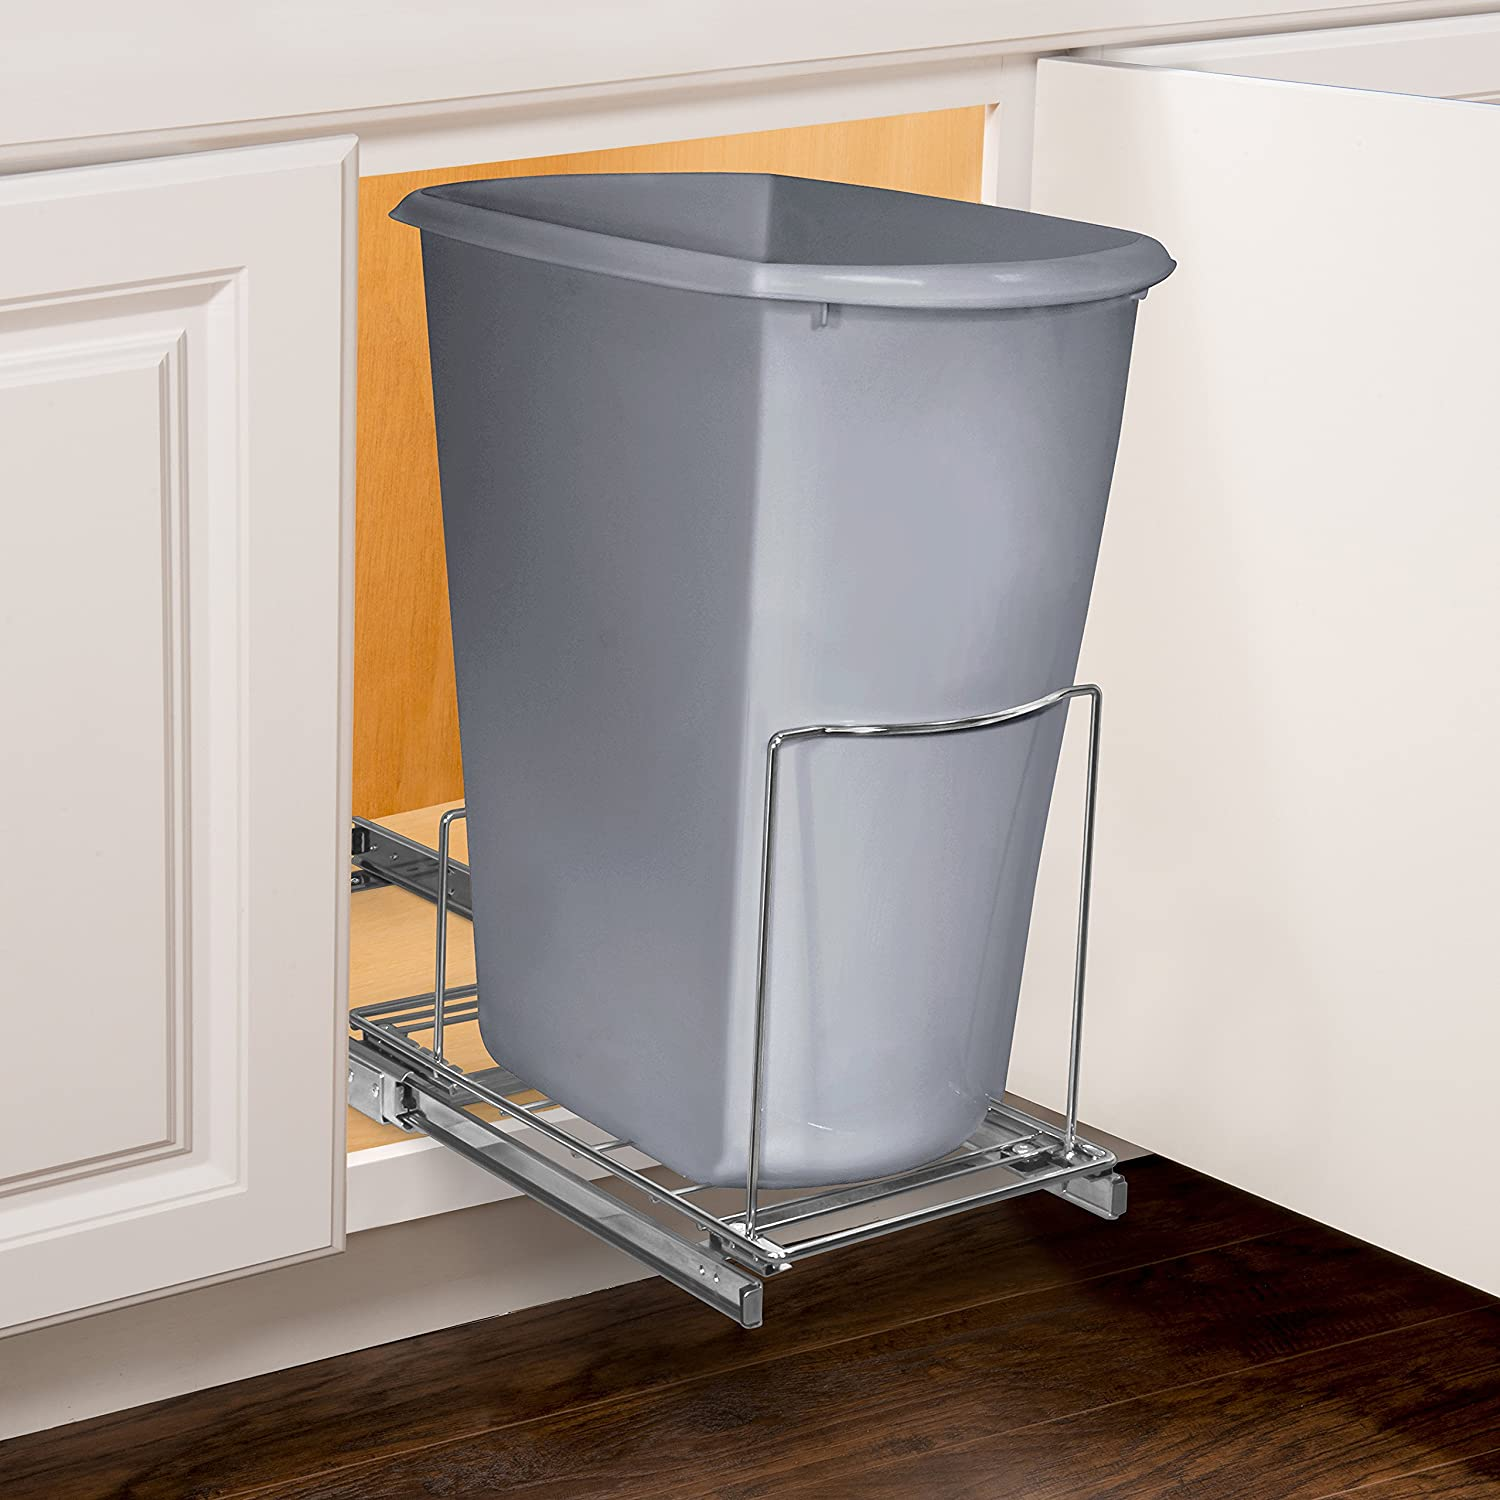 Lynk Professional Roll Out Bin Holder - Pull Out Under Cabinet Sliding Organizer - 10.1 inch wide x 20.02 inch deep - Chrome 430121DS